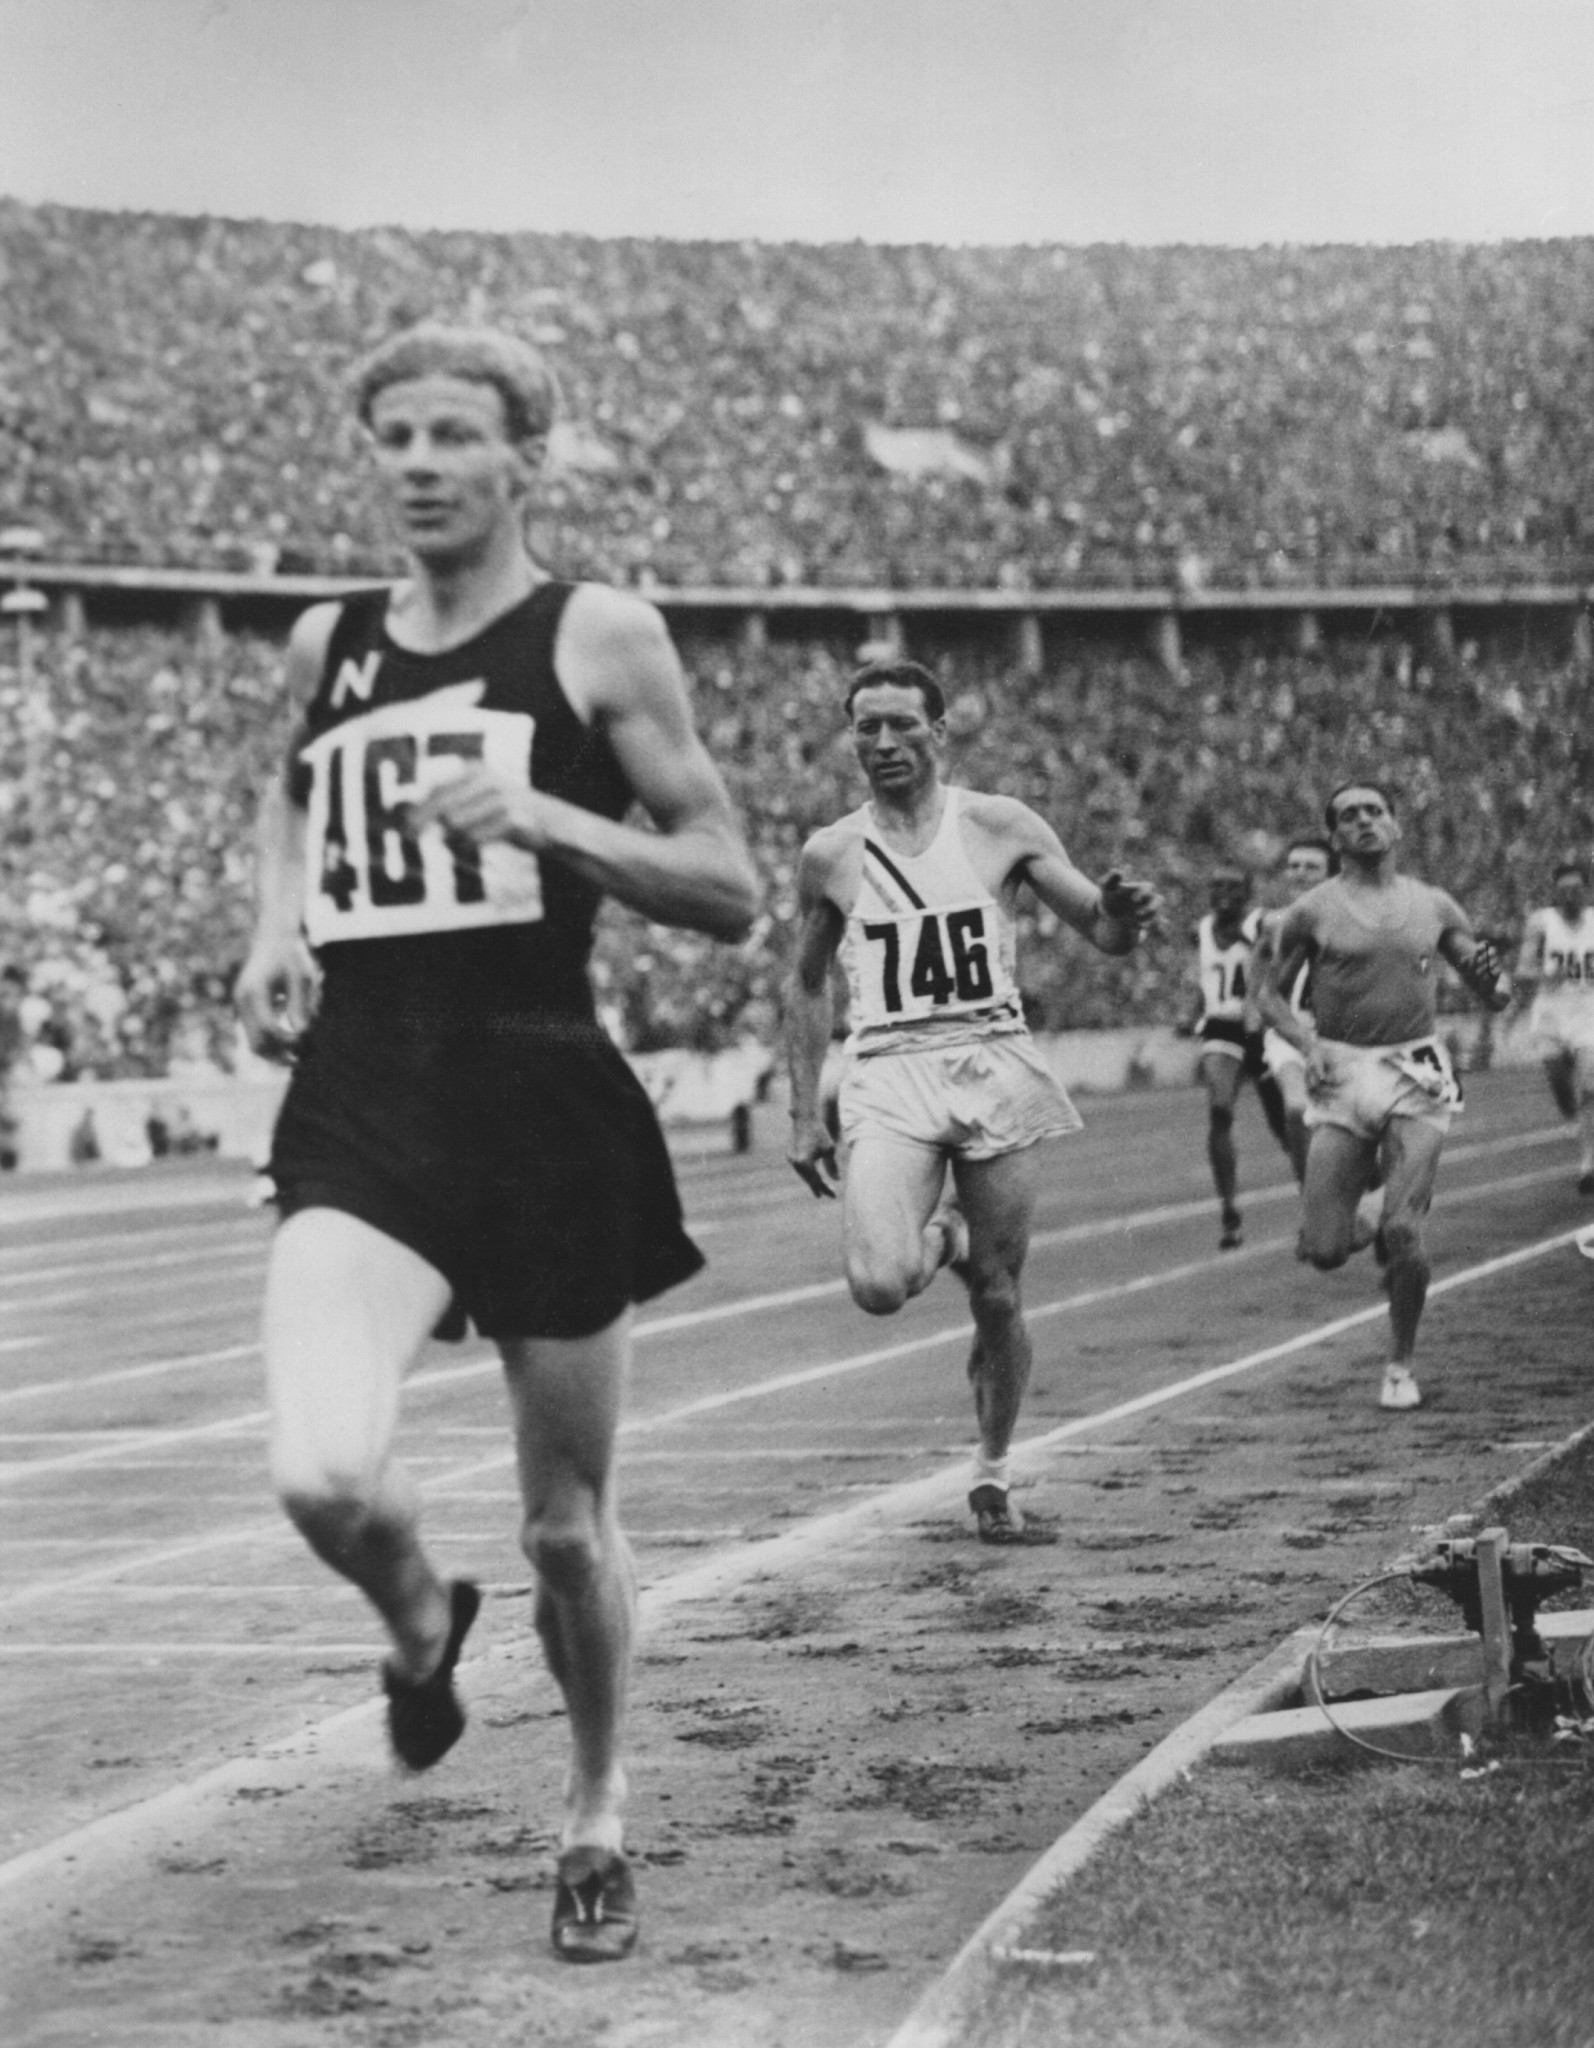 Jack Lovelock will be remembered for his Berlin 1936 performance ©Getty Images